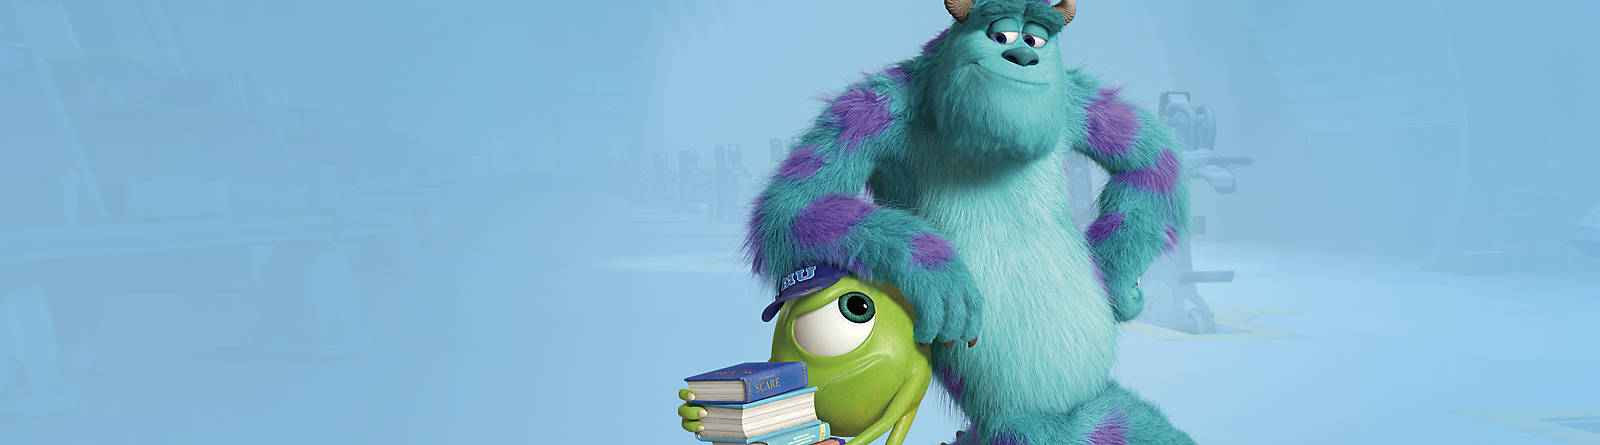 Monsters Discover our range of Monsters Inc merchandise featuring soft toys, playsets, collectibles and more